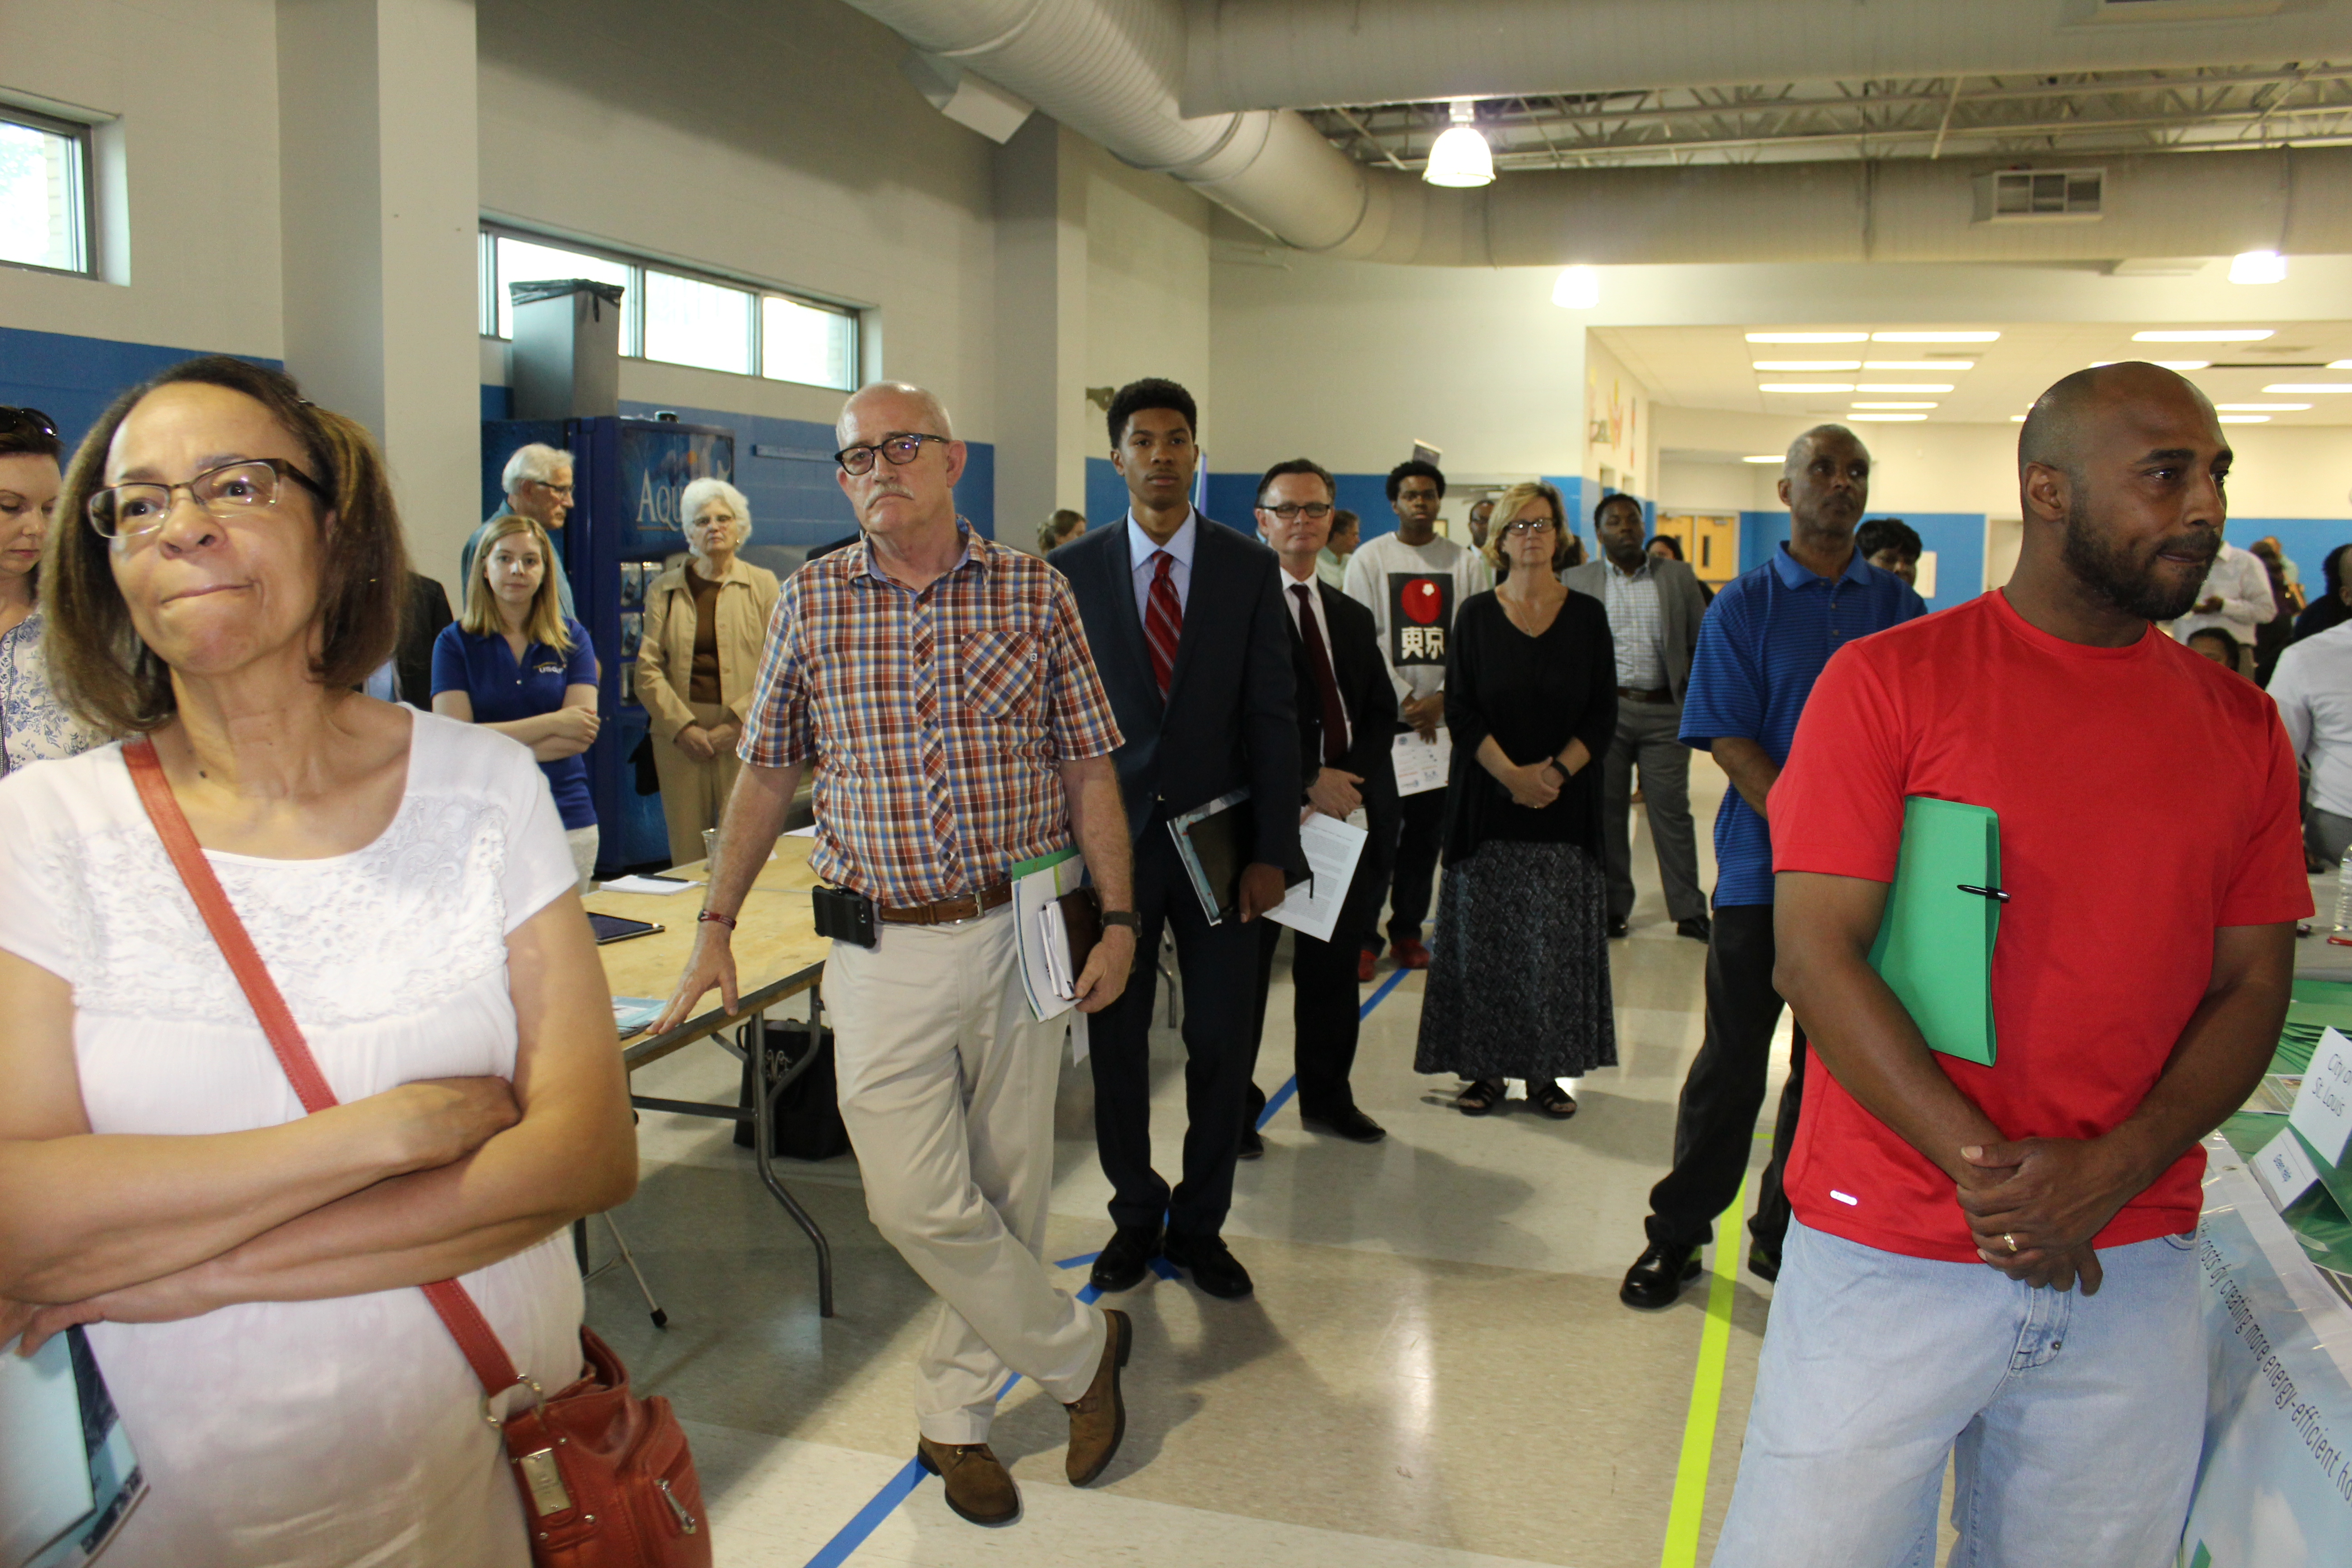 North St. Louis residents watch opening remarks of Project Connect Open House